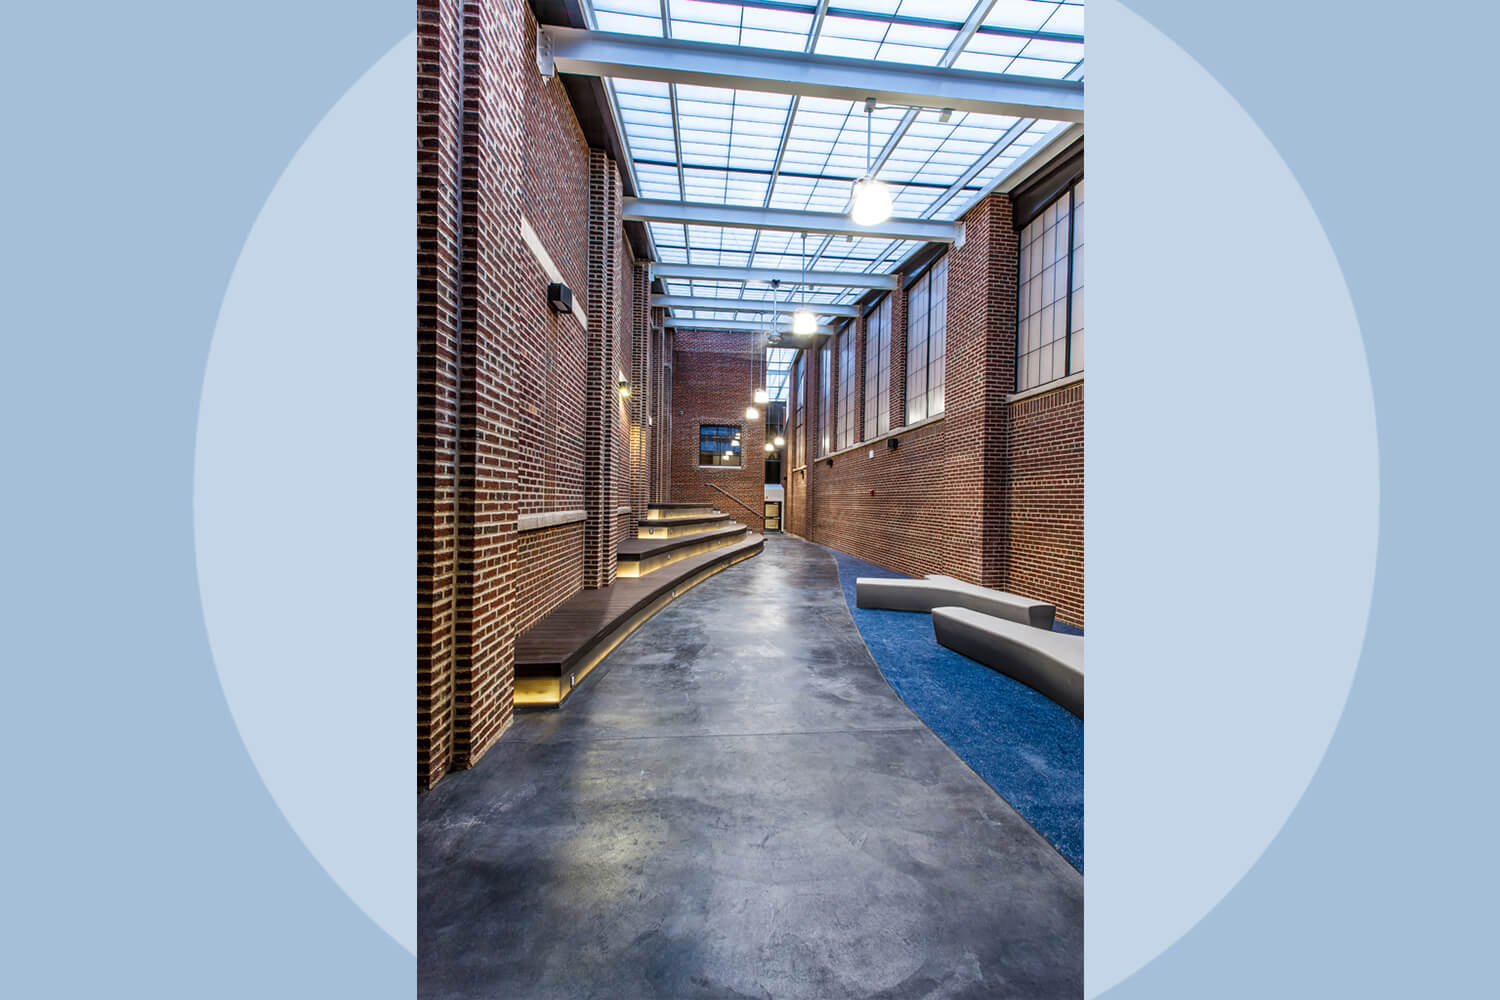 Evanston Township High School – Entry & Renovation Project interior 4